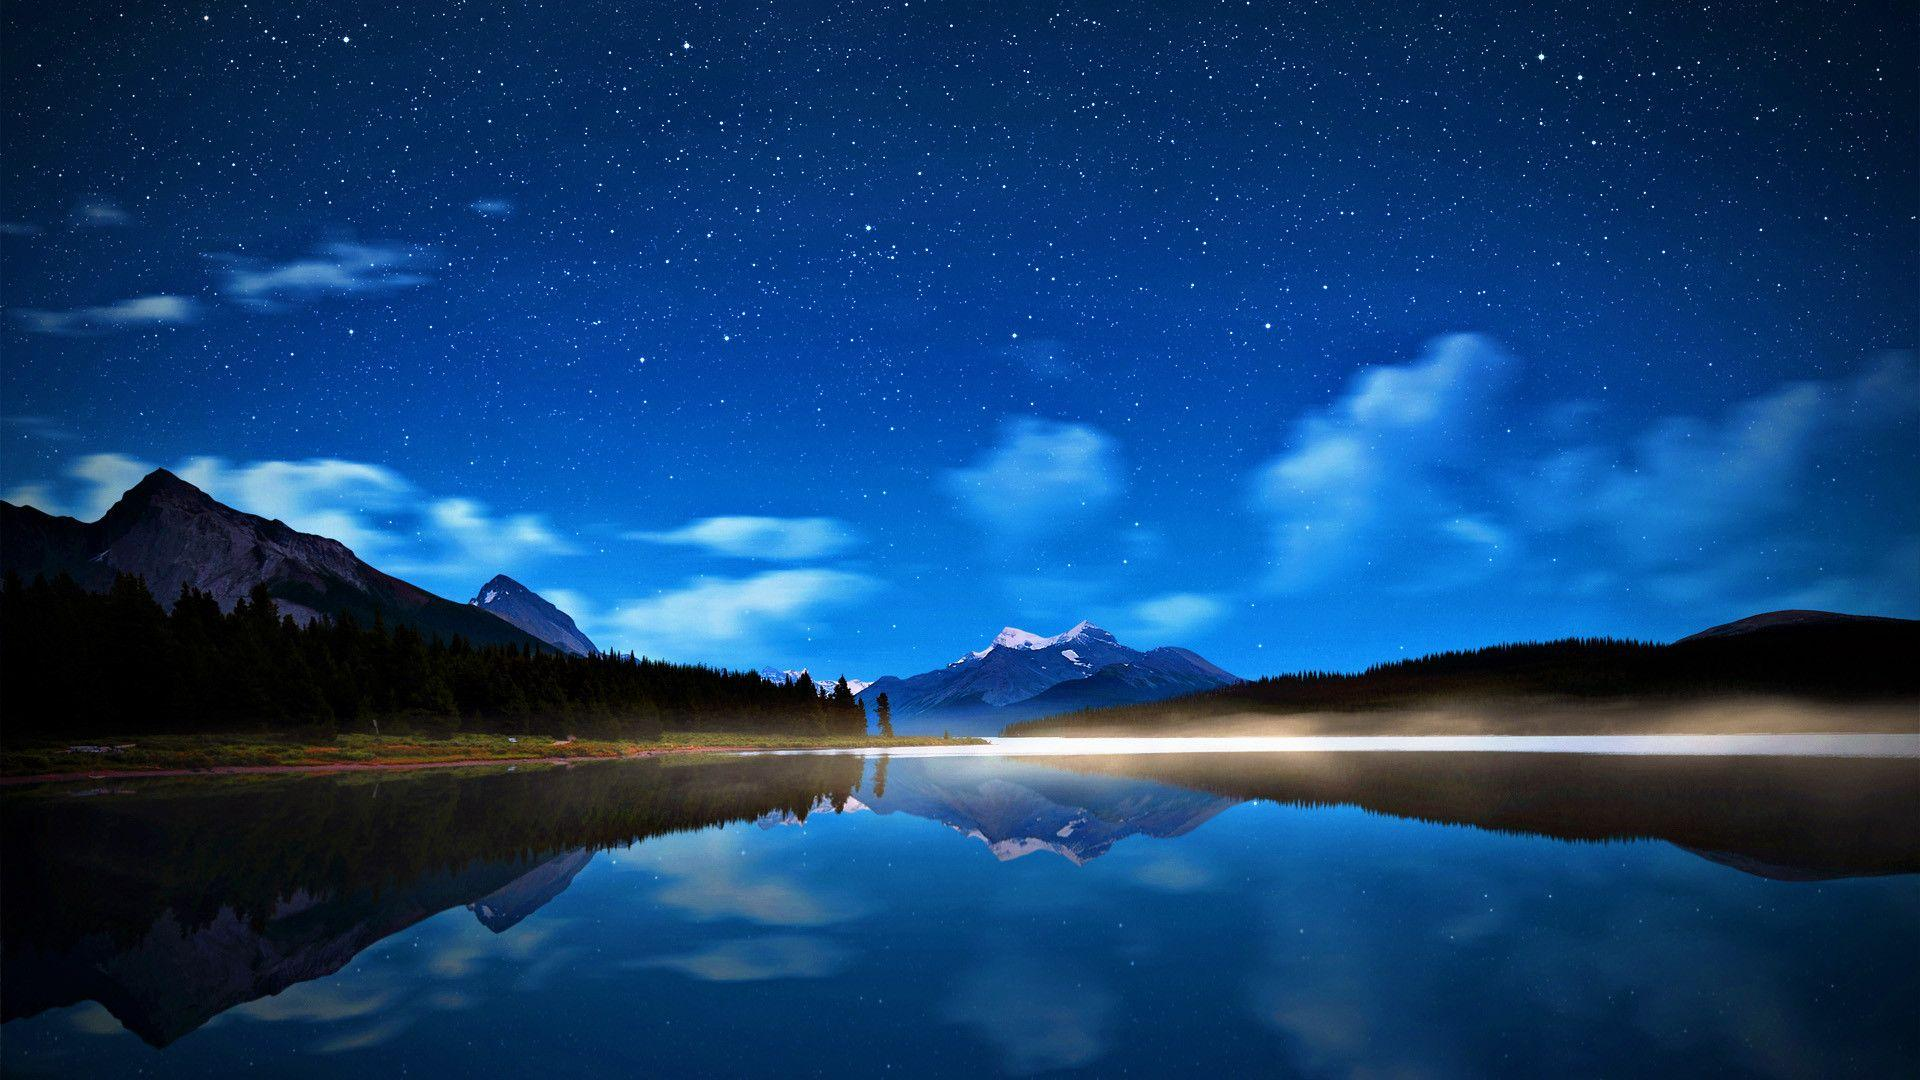 Night Sky Wallpapers - Wallpaper Cave